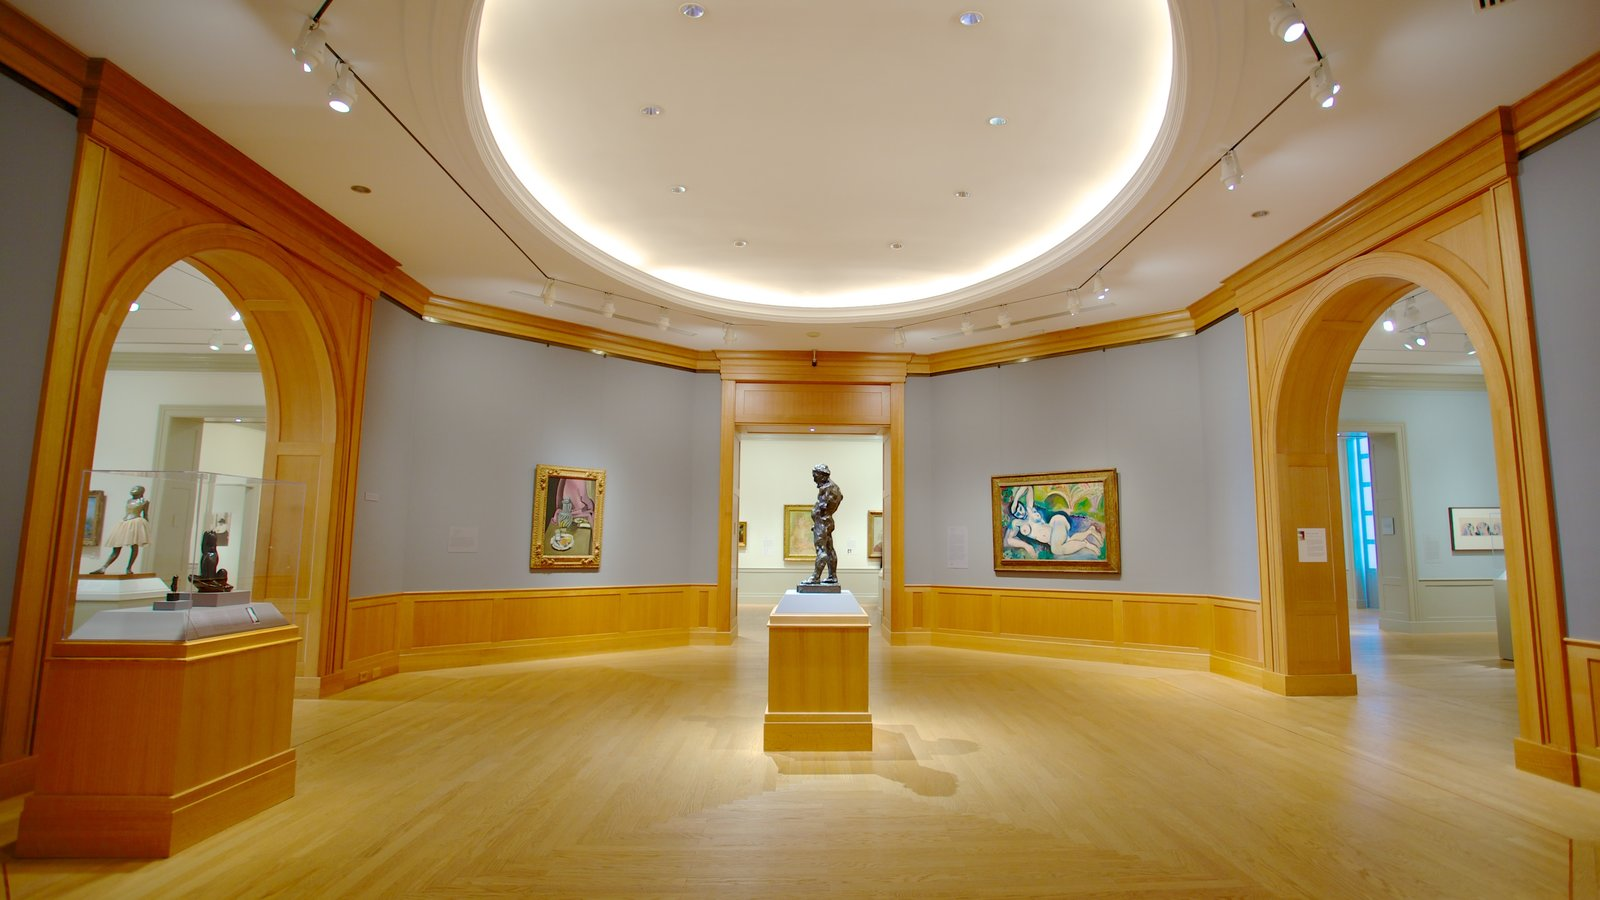 Baltimore Museum of Art showing interior views and art